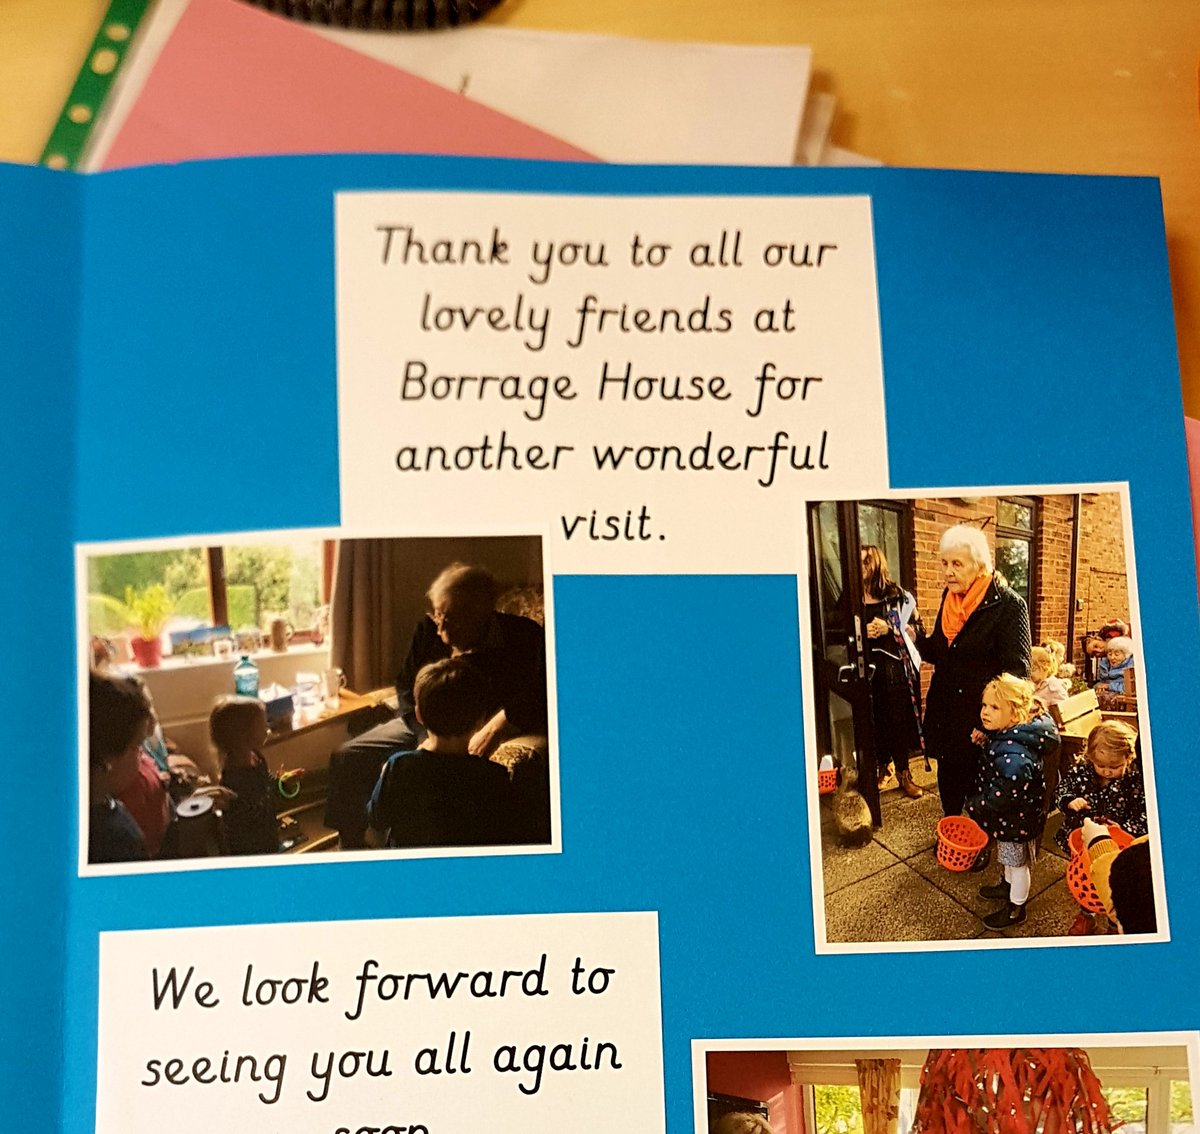 Borrage House Twitter post